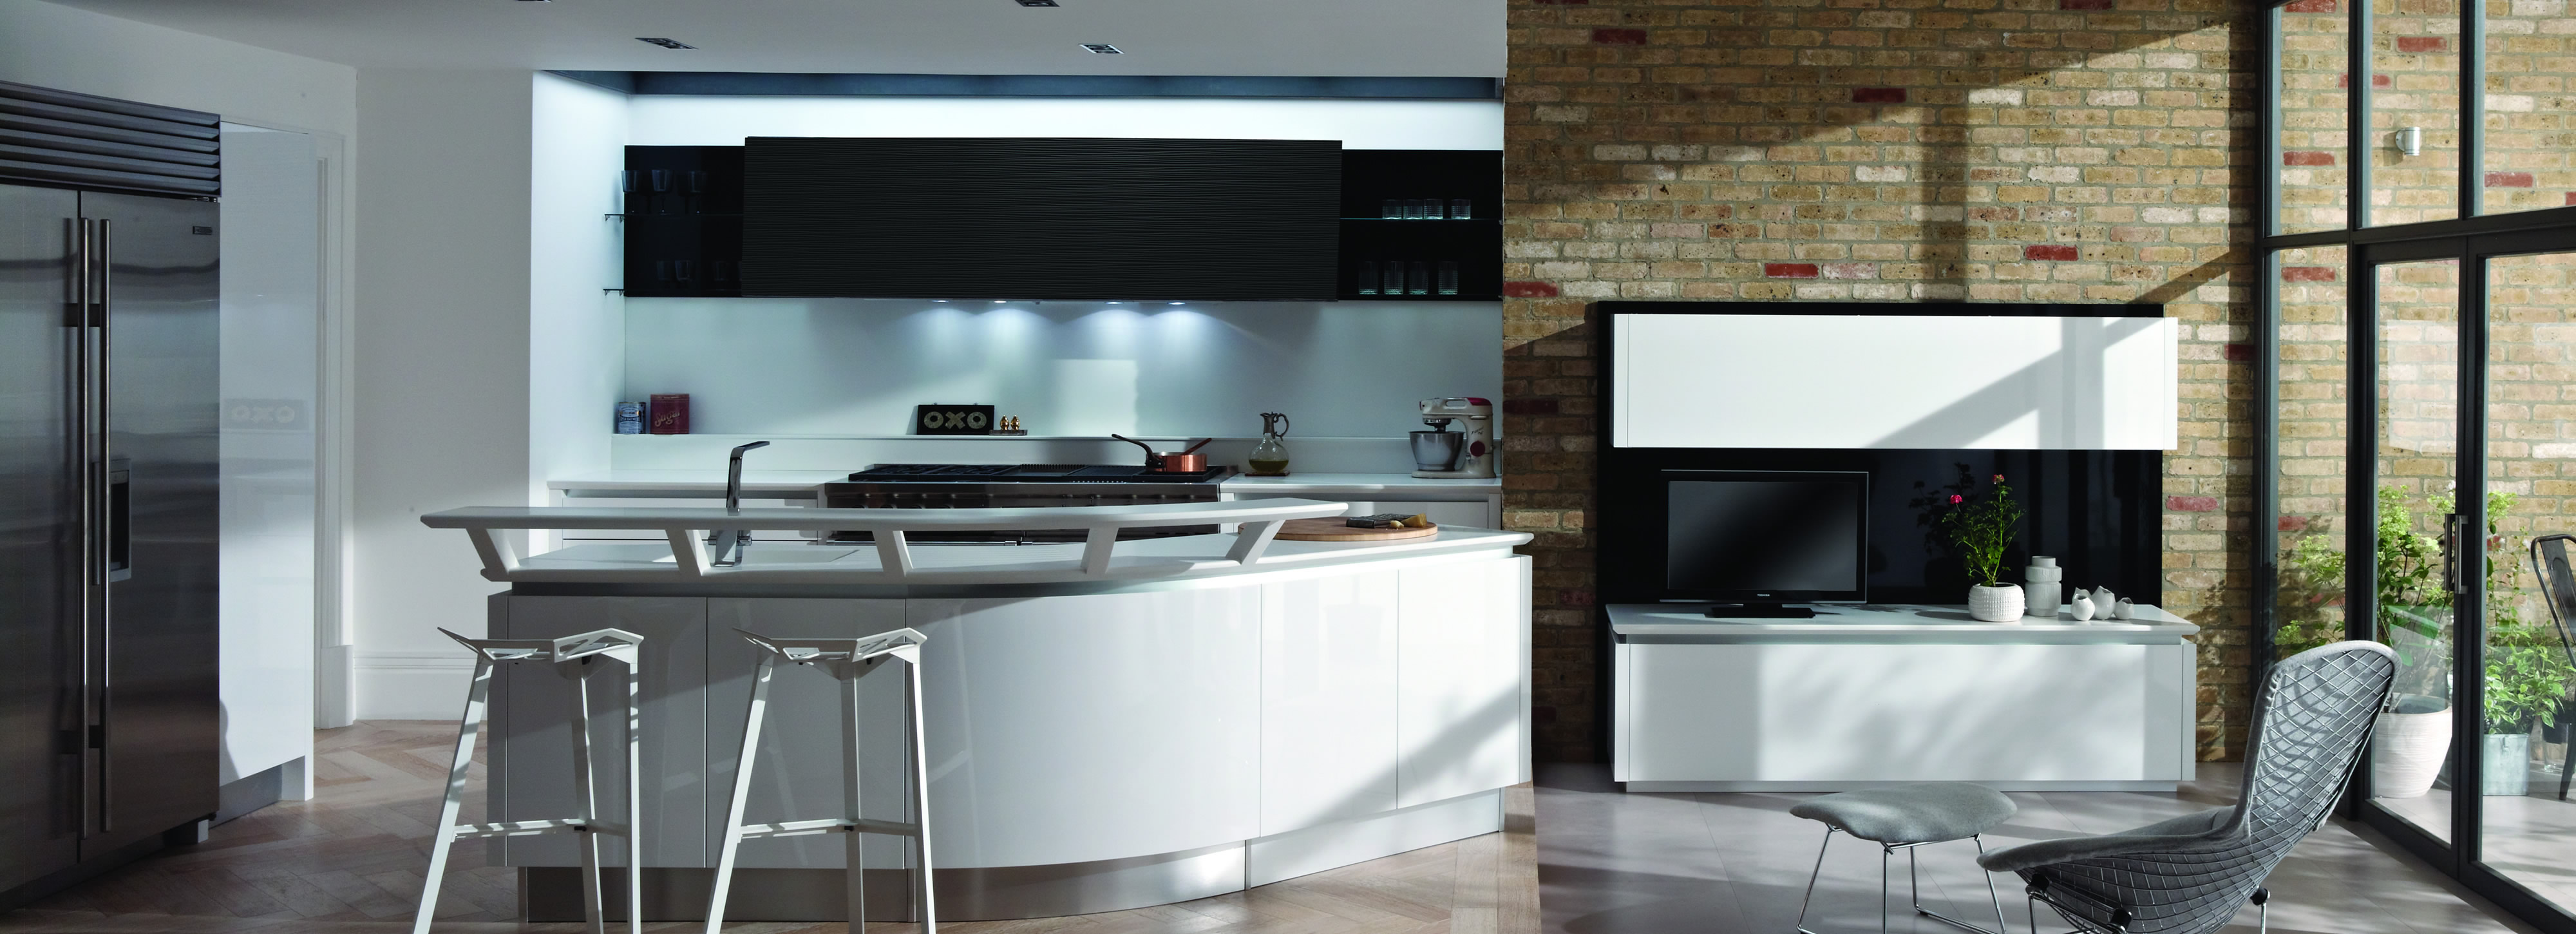 Curved Kitchen by Metris